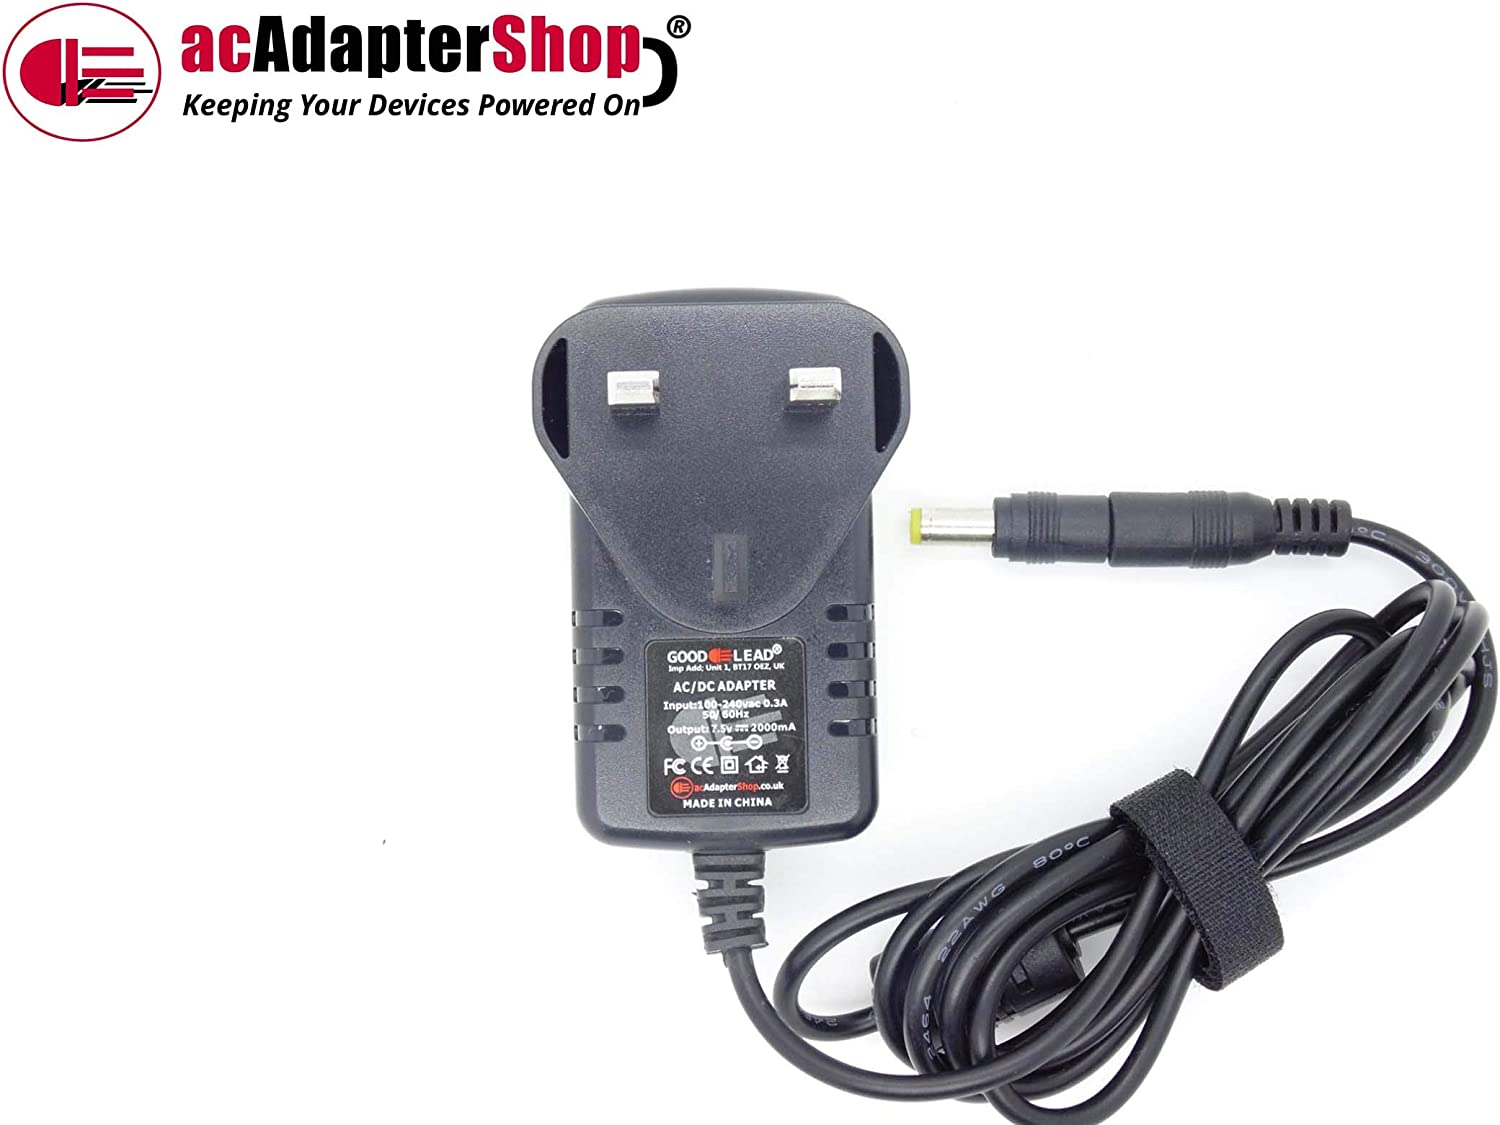 GOOD LEAD Replacement for 7.5V 400mA AD-1 AC Adaptor fits Casio SA-75 Song Bank Keyboard